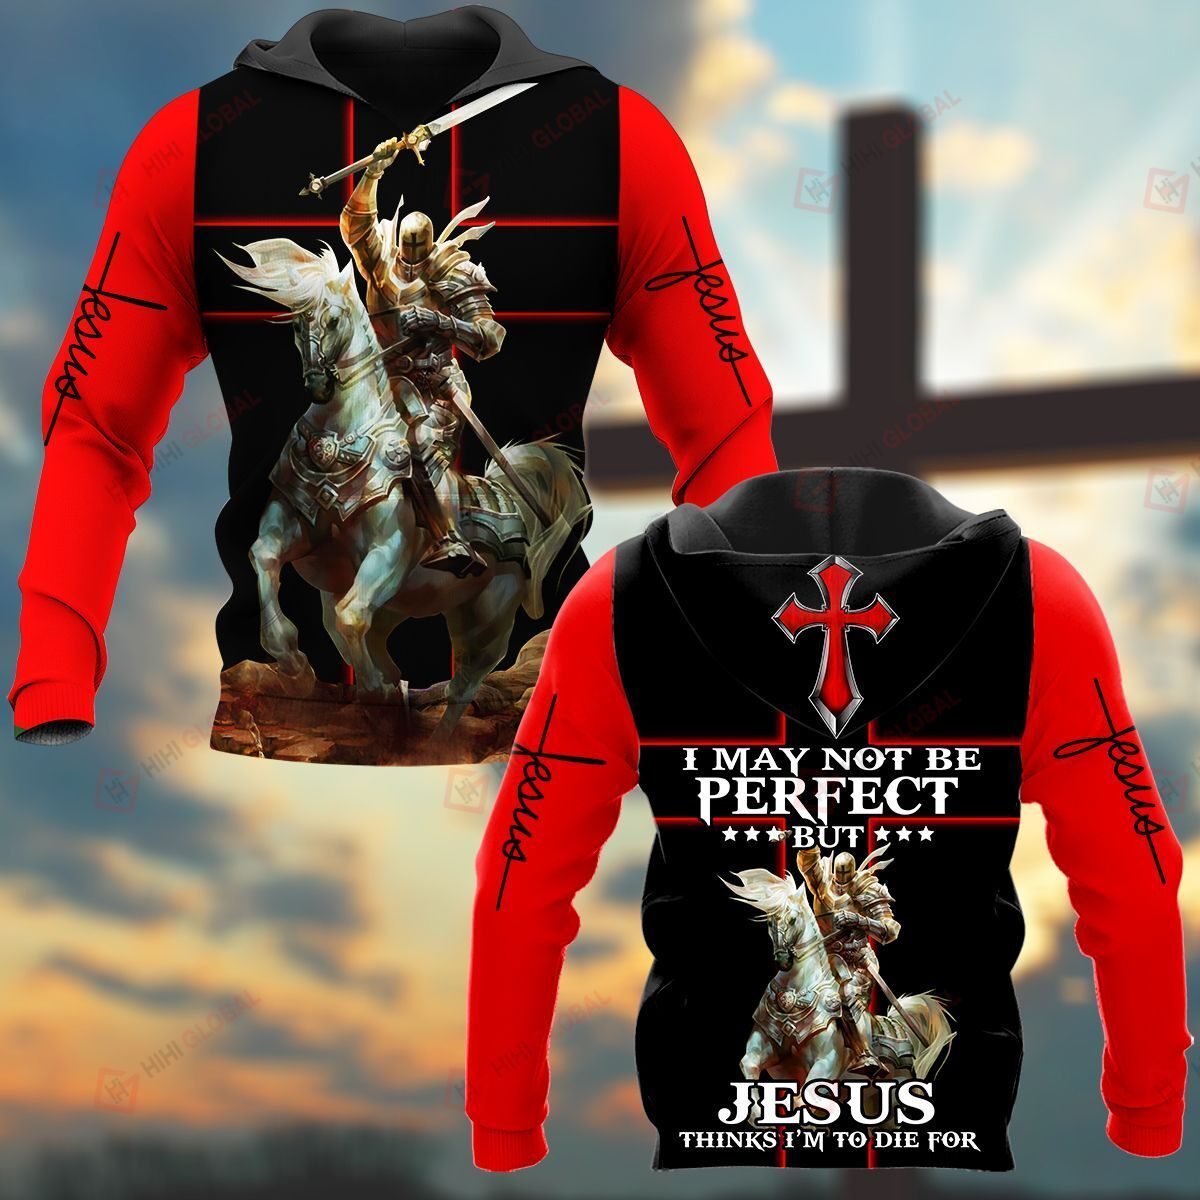 I May Not Be Perfect But Jesus Things I'm To Die For Knight ALL OVER PRINTED SHIRTS